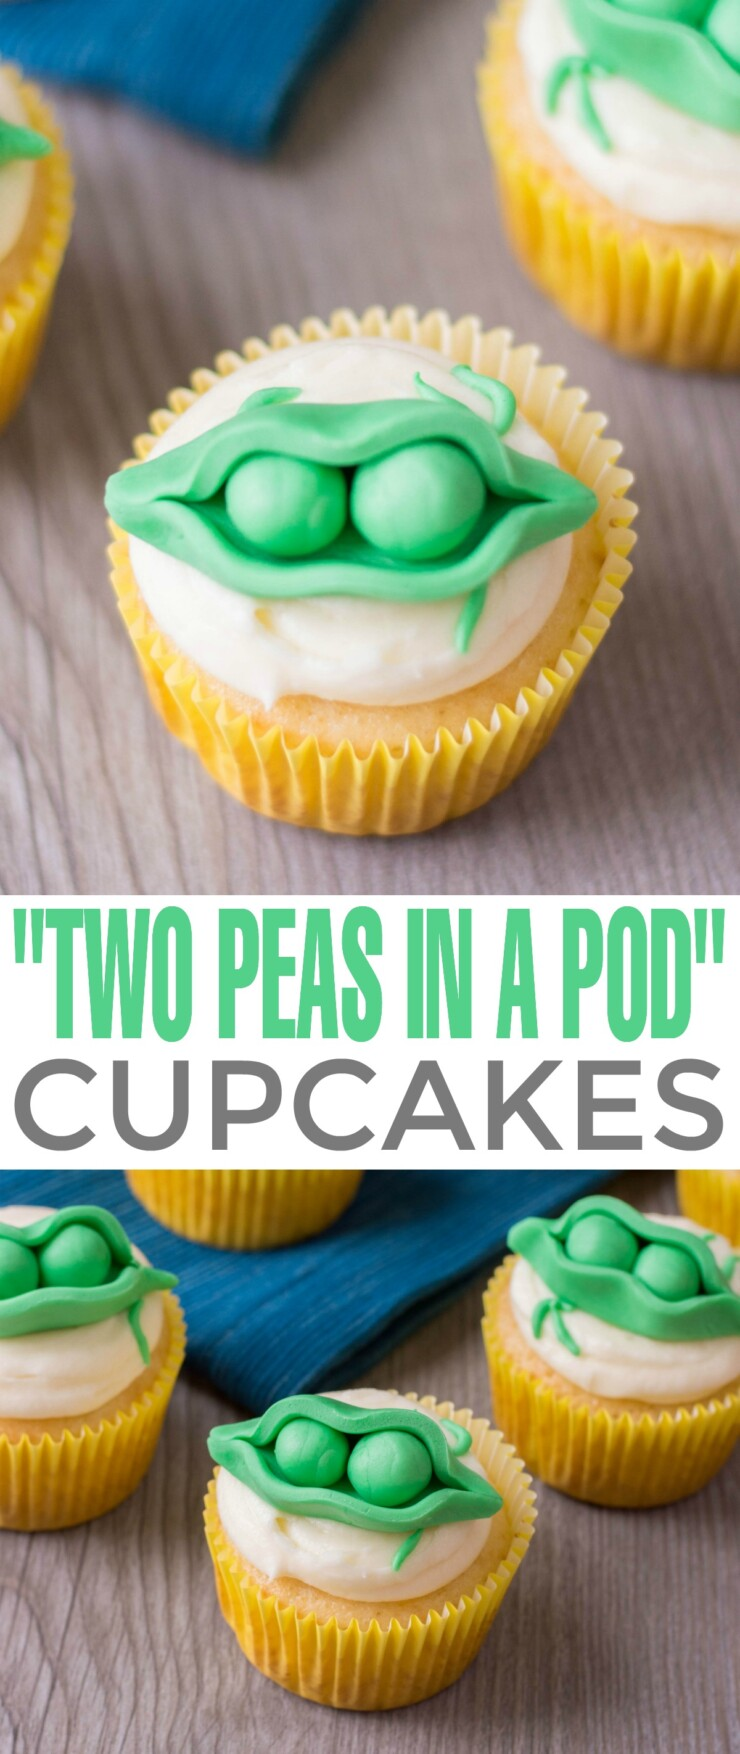 "Looking for cute ideas for a twin baby shower? These ""Two Peas in a Pod"" Cupcakes are perfect for a twin baby shower theme or first birthday theme."